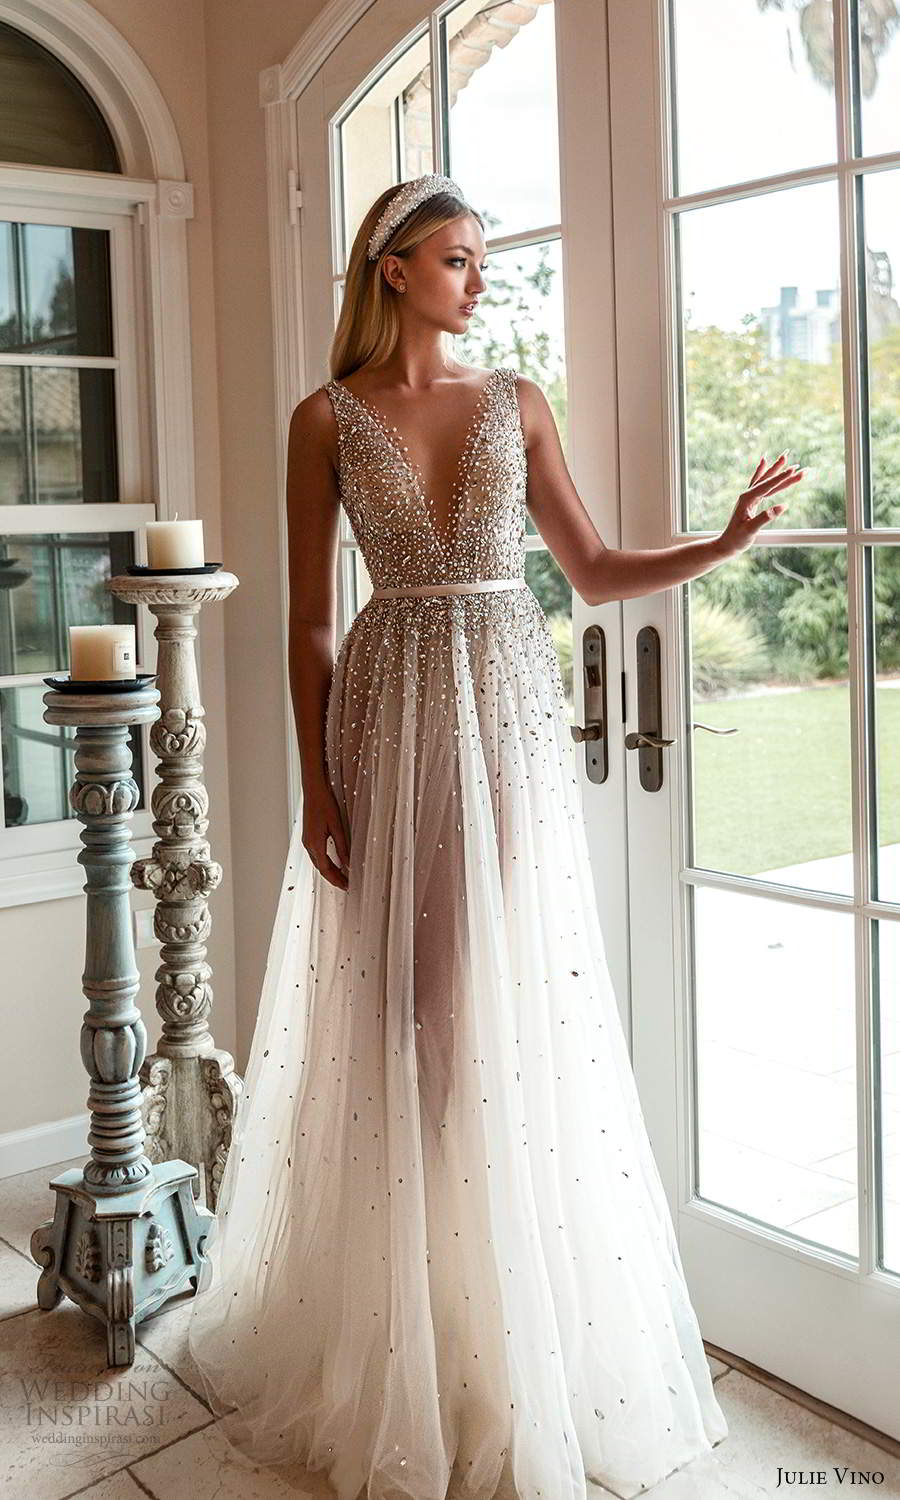 julie vino 2021 romanzo bridal sleeveless straps plunging v neckline heavily embellished bodice a line ball gown wedding dress chapel train v back (5) mv